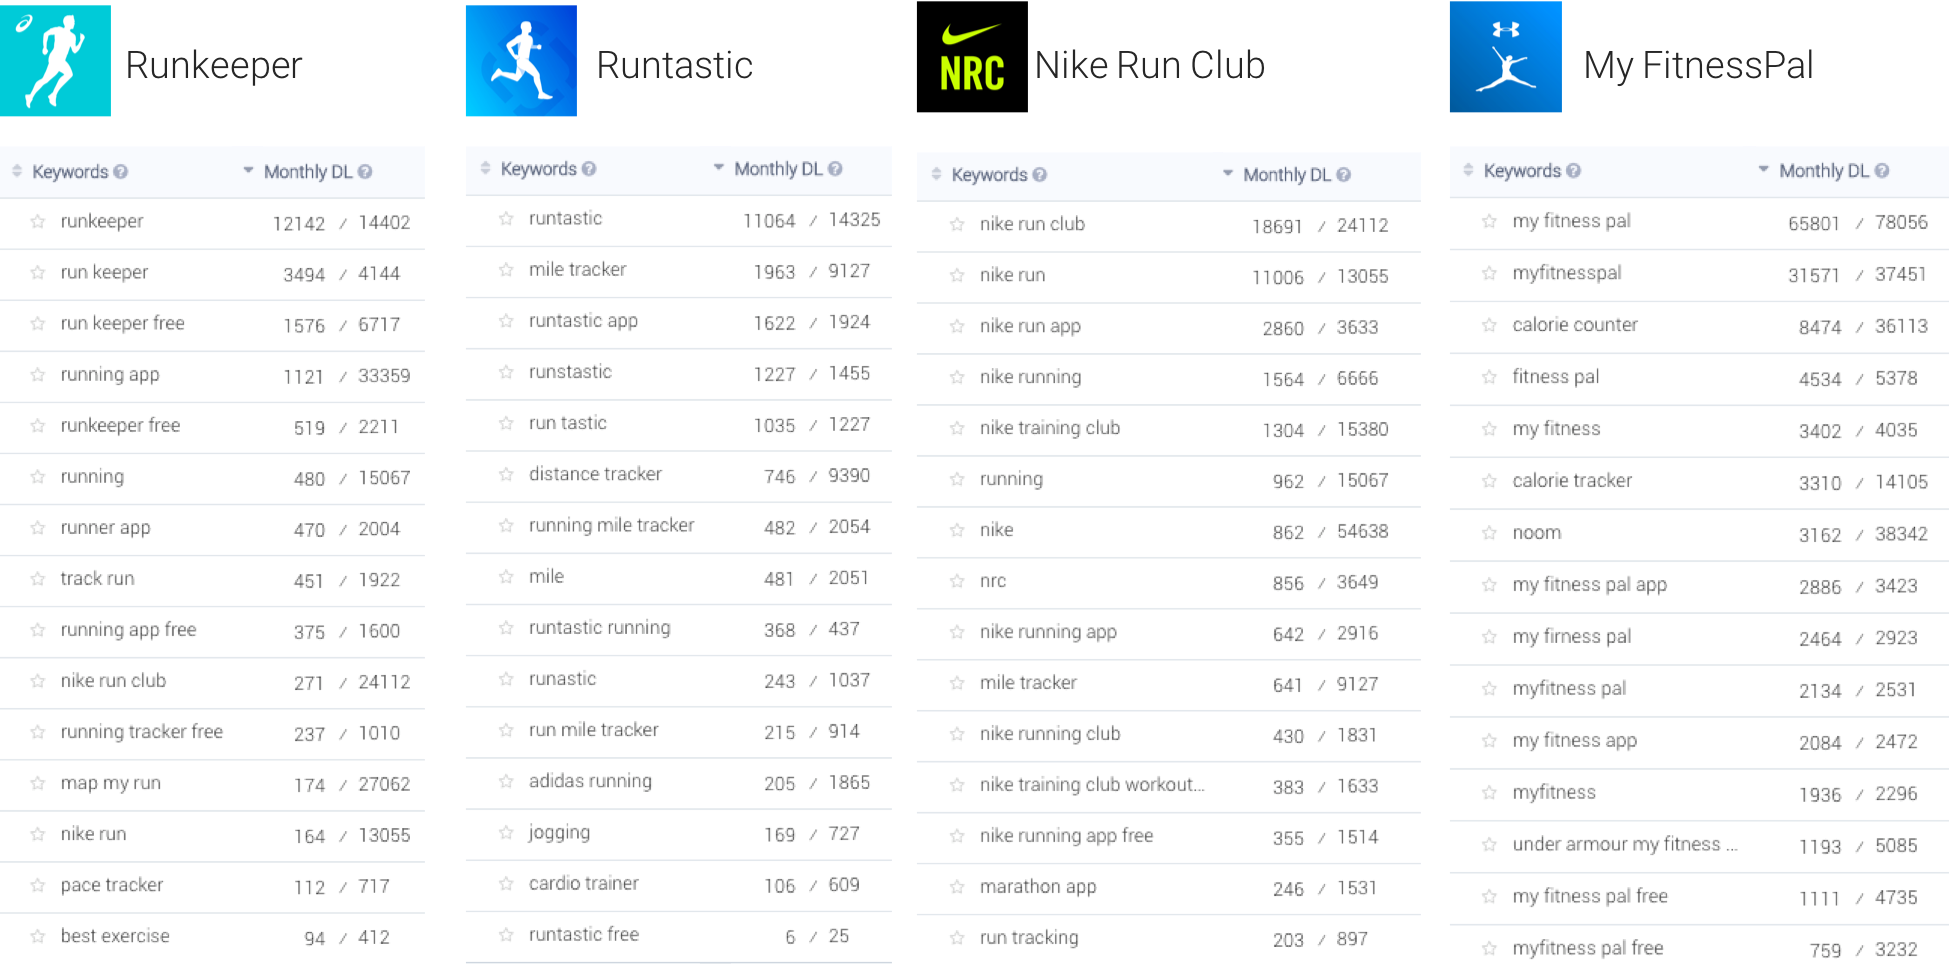 The top download keywords of 4 major fitness apps in the US and the downloads they bring to each app in the App Store